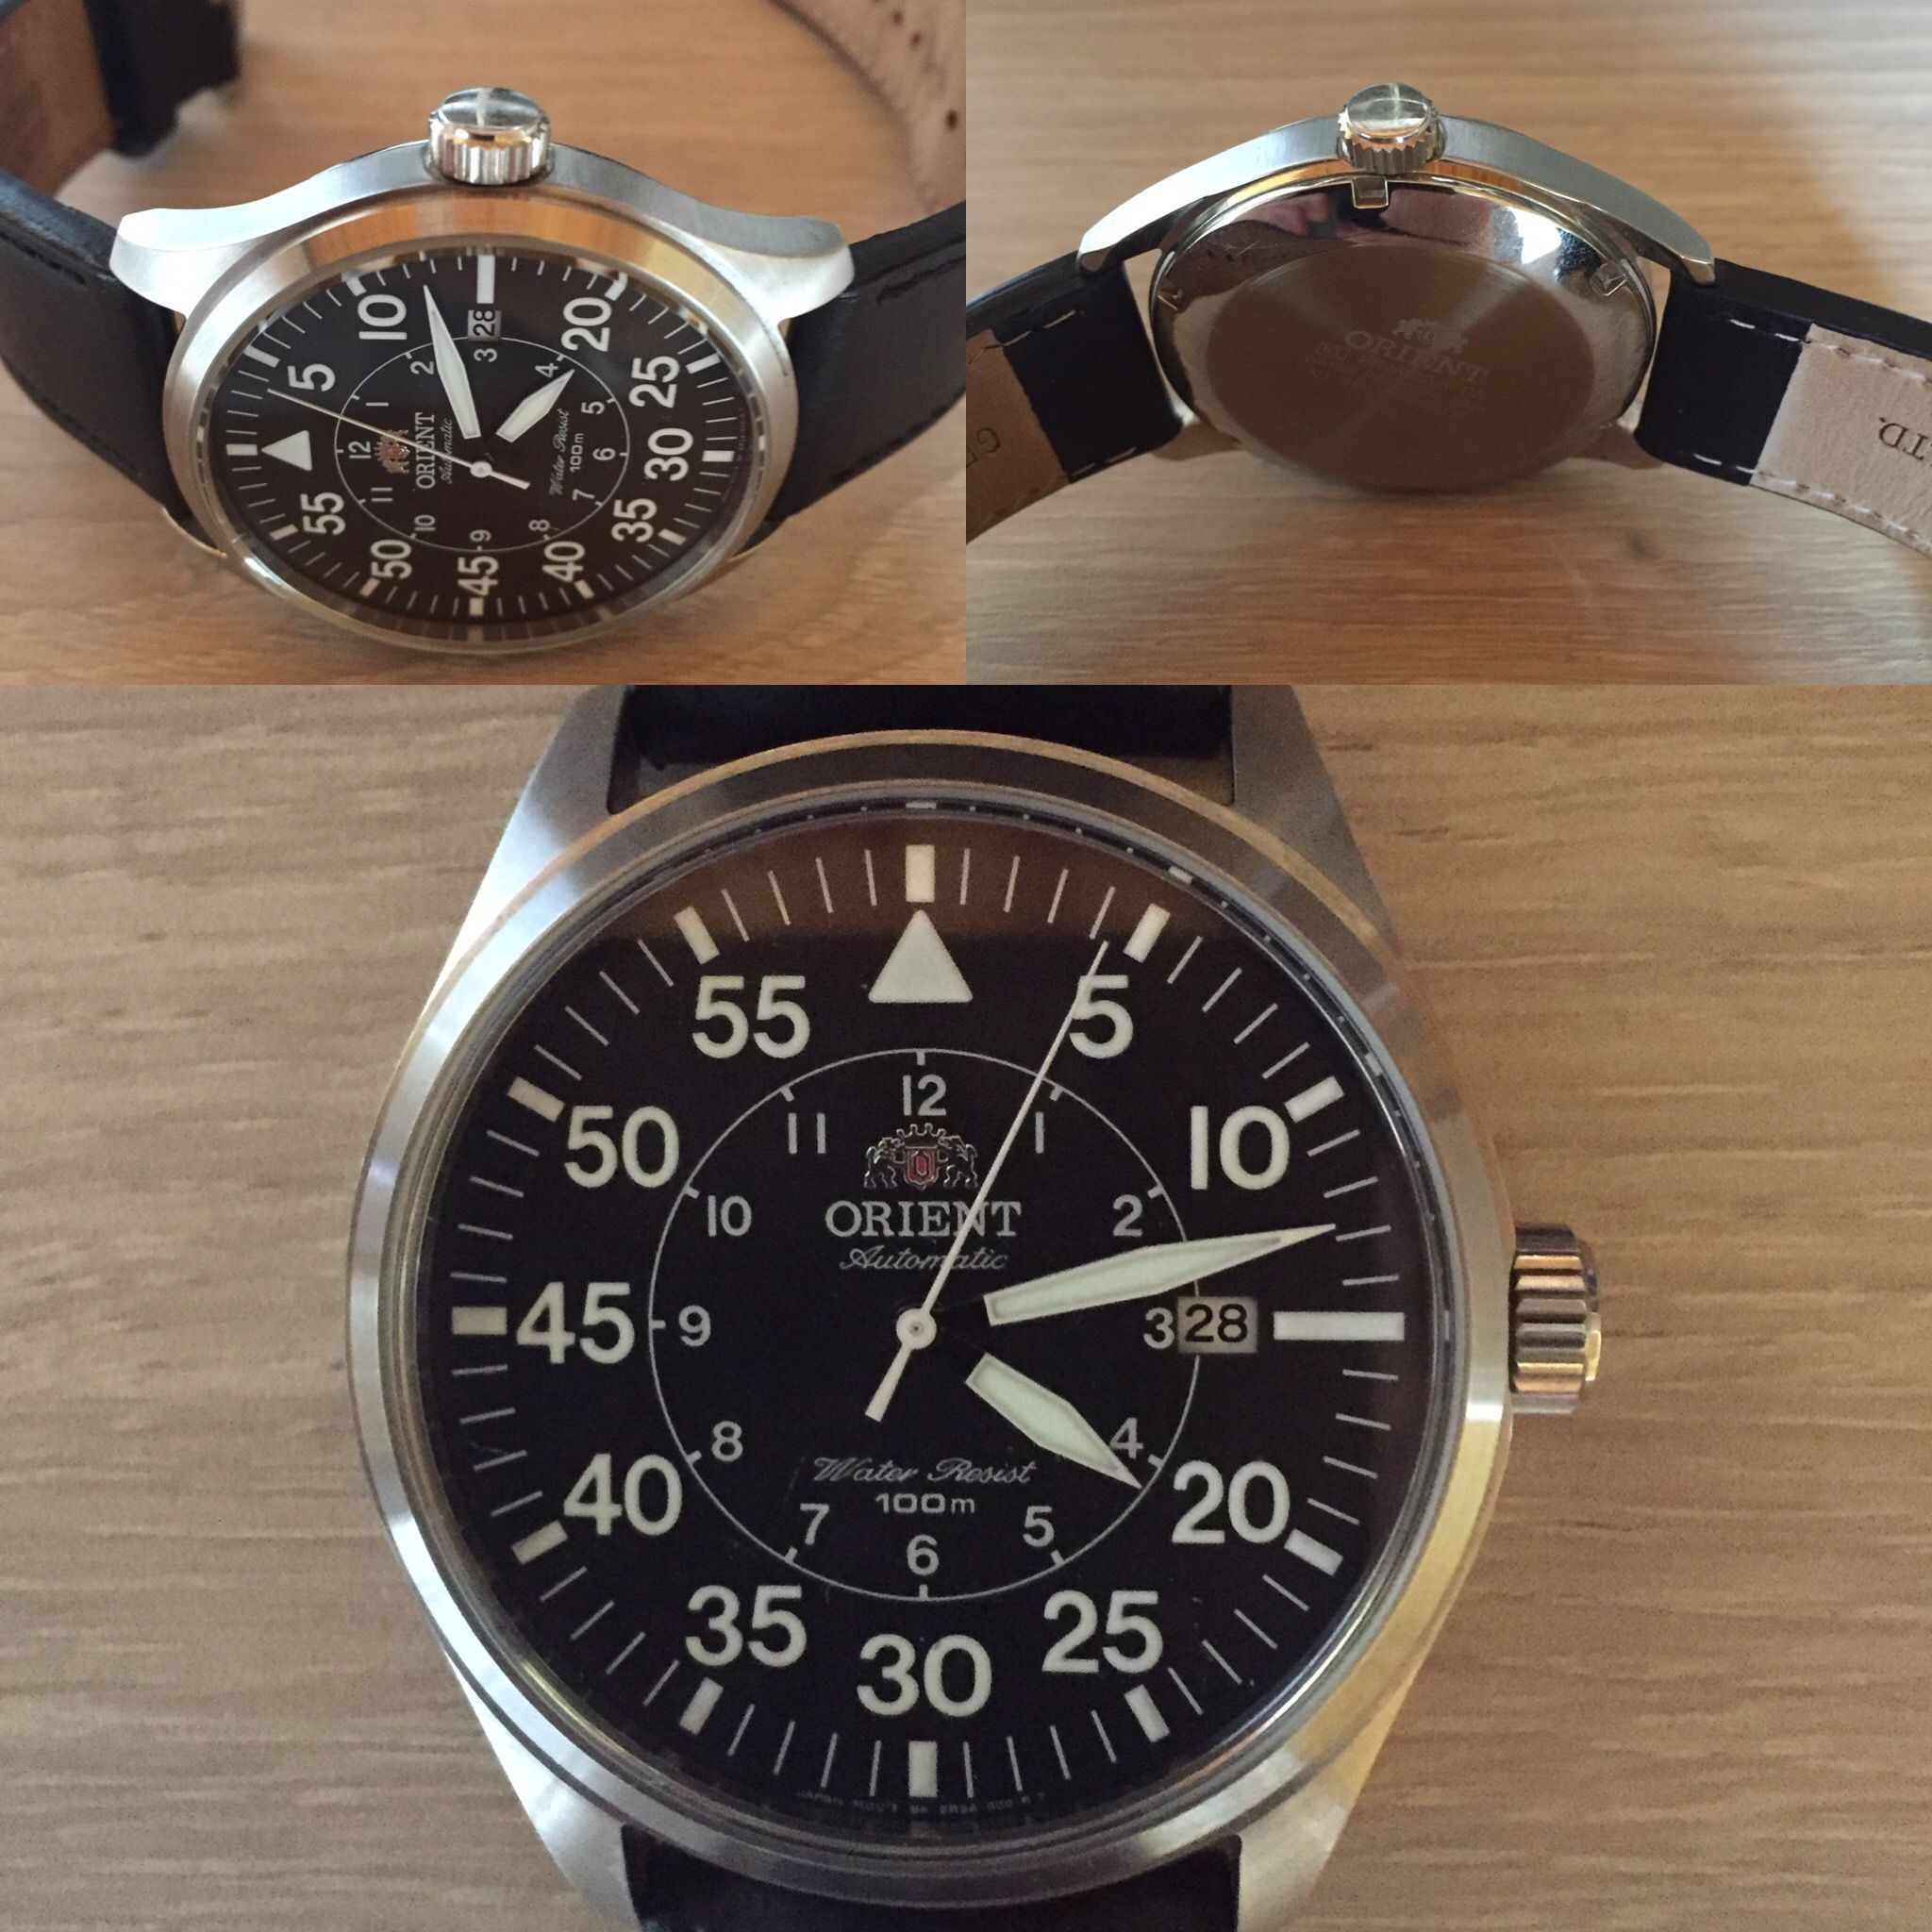 Orient flight flieger automatic pilot watch